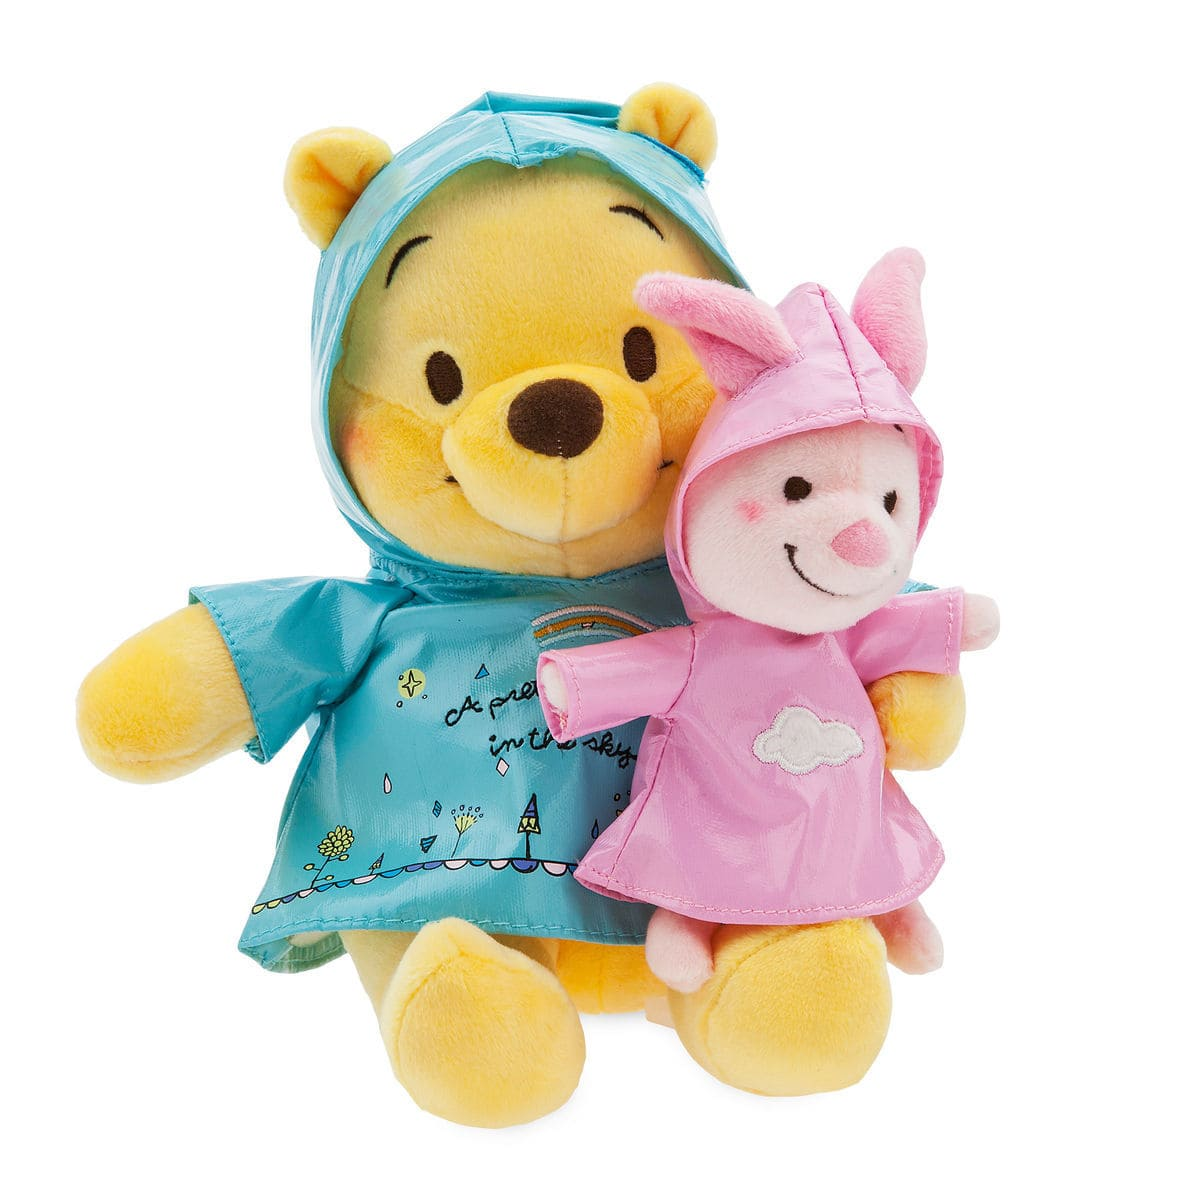 Winnie the Pooh and Piglet Rainy Day Plush Set - Small $11.24